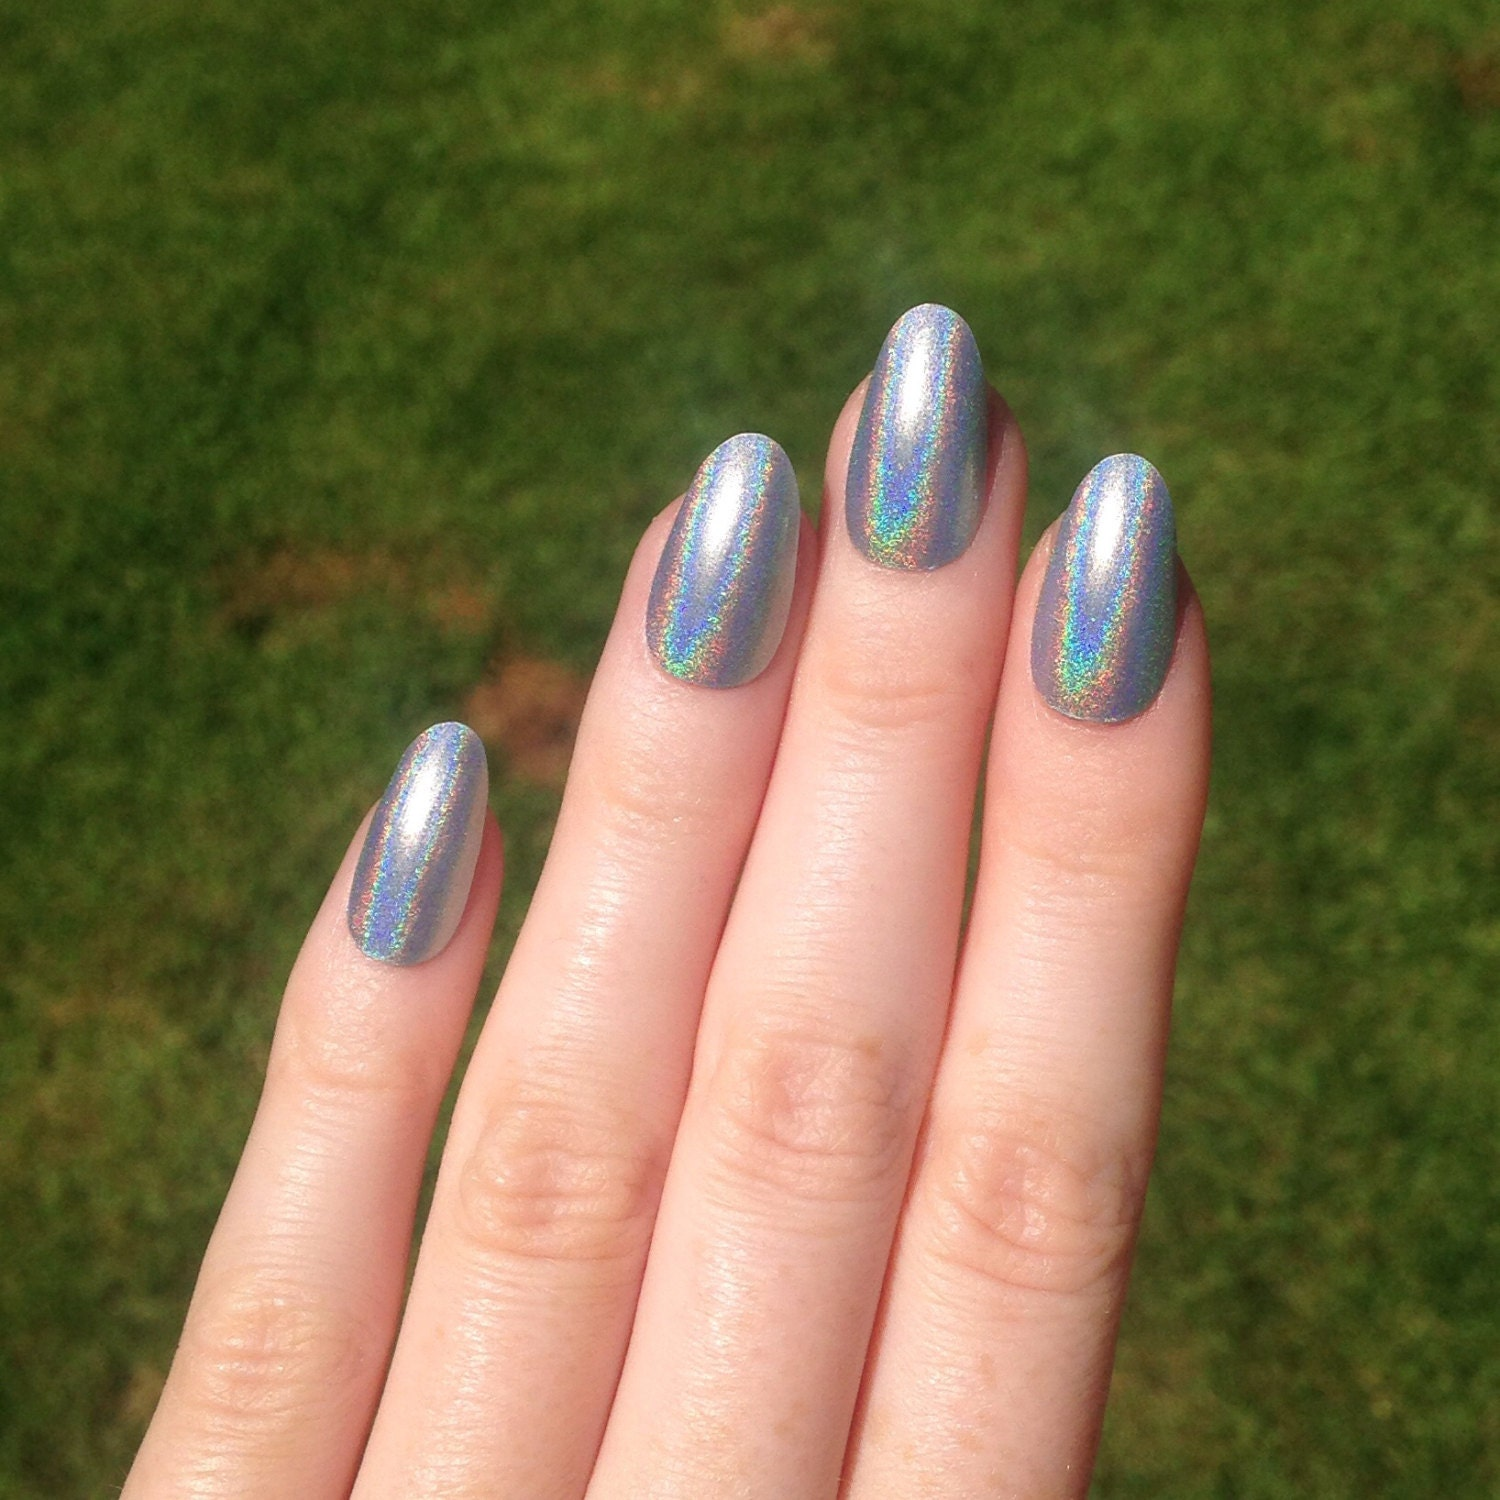 Today live sports ultra holographic silver oval nails nail ultra holographic silver oval nails nail designs nail art nails oval nails acrylic nails pointy nails fake nails prinsesfo Images